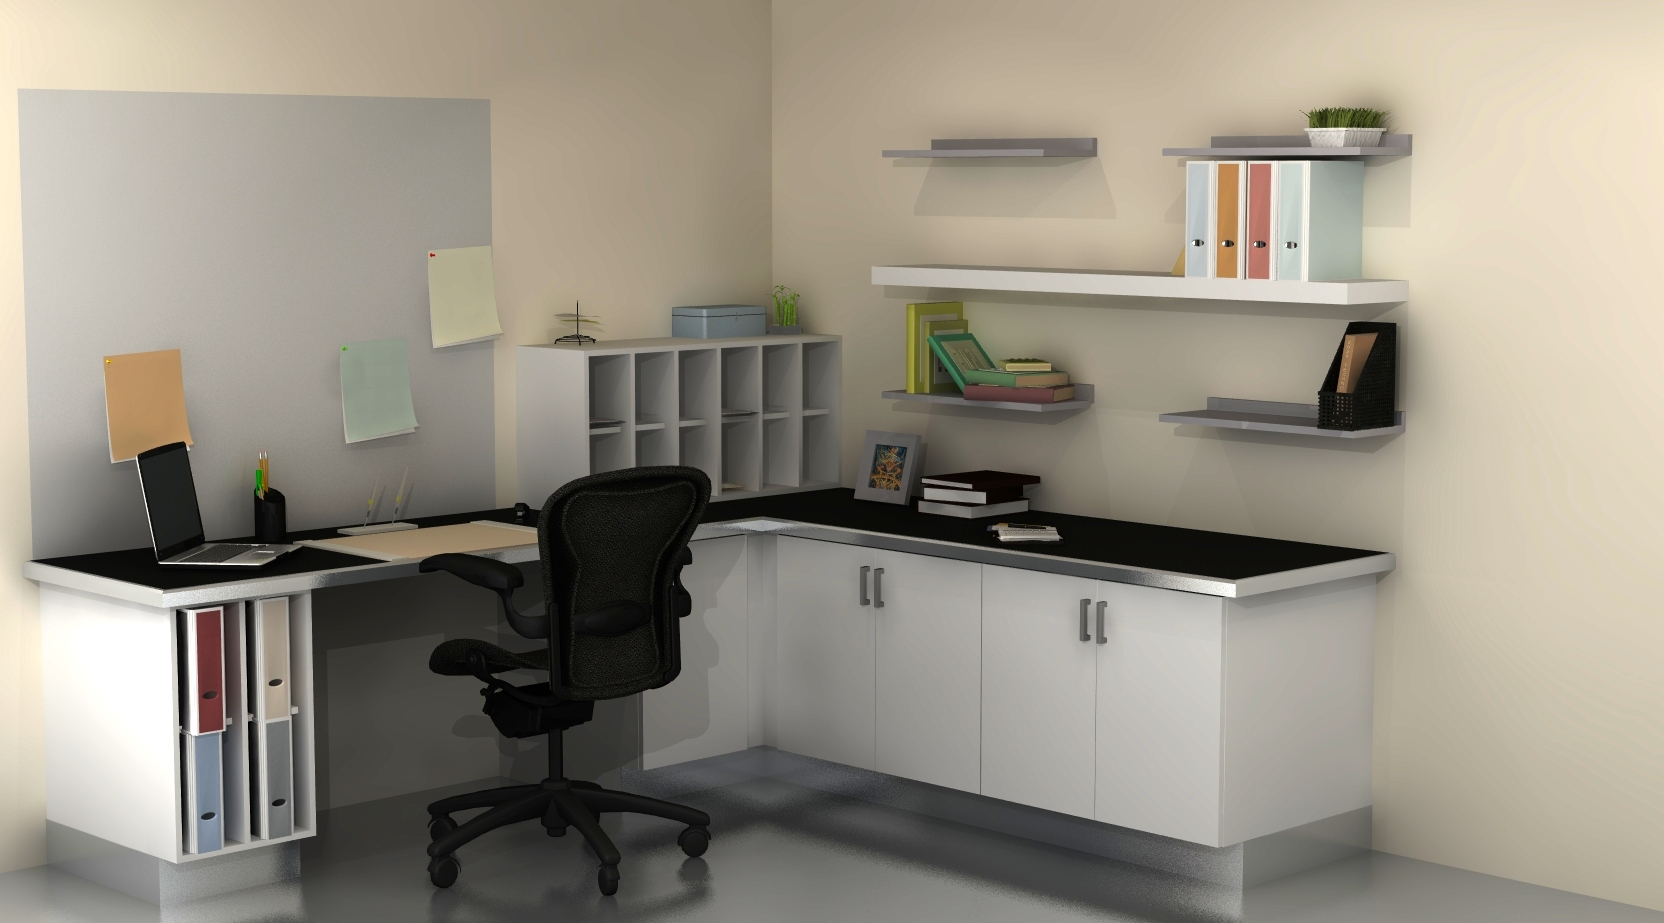 Ikea Home Office Youtube Useful Spaces A Home Office With Ikea Cabinets